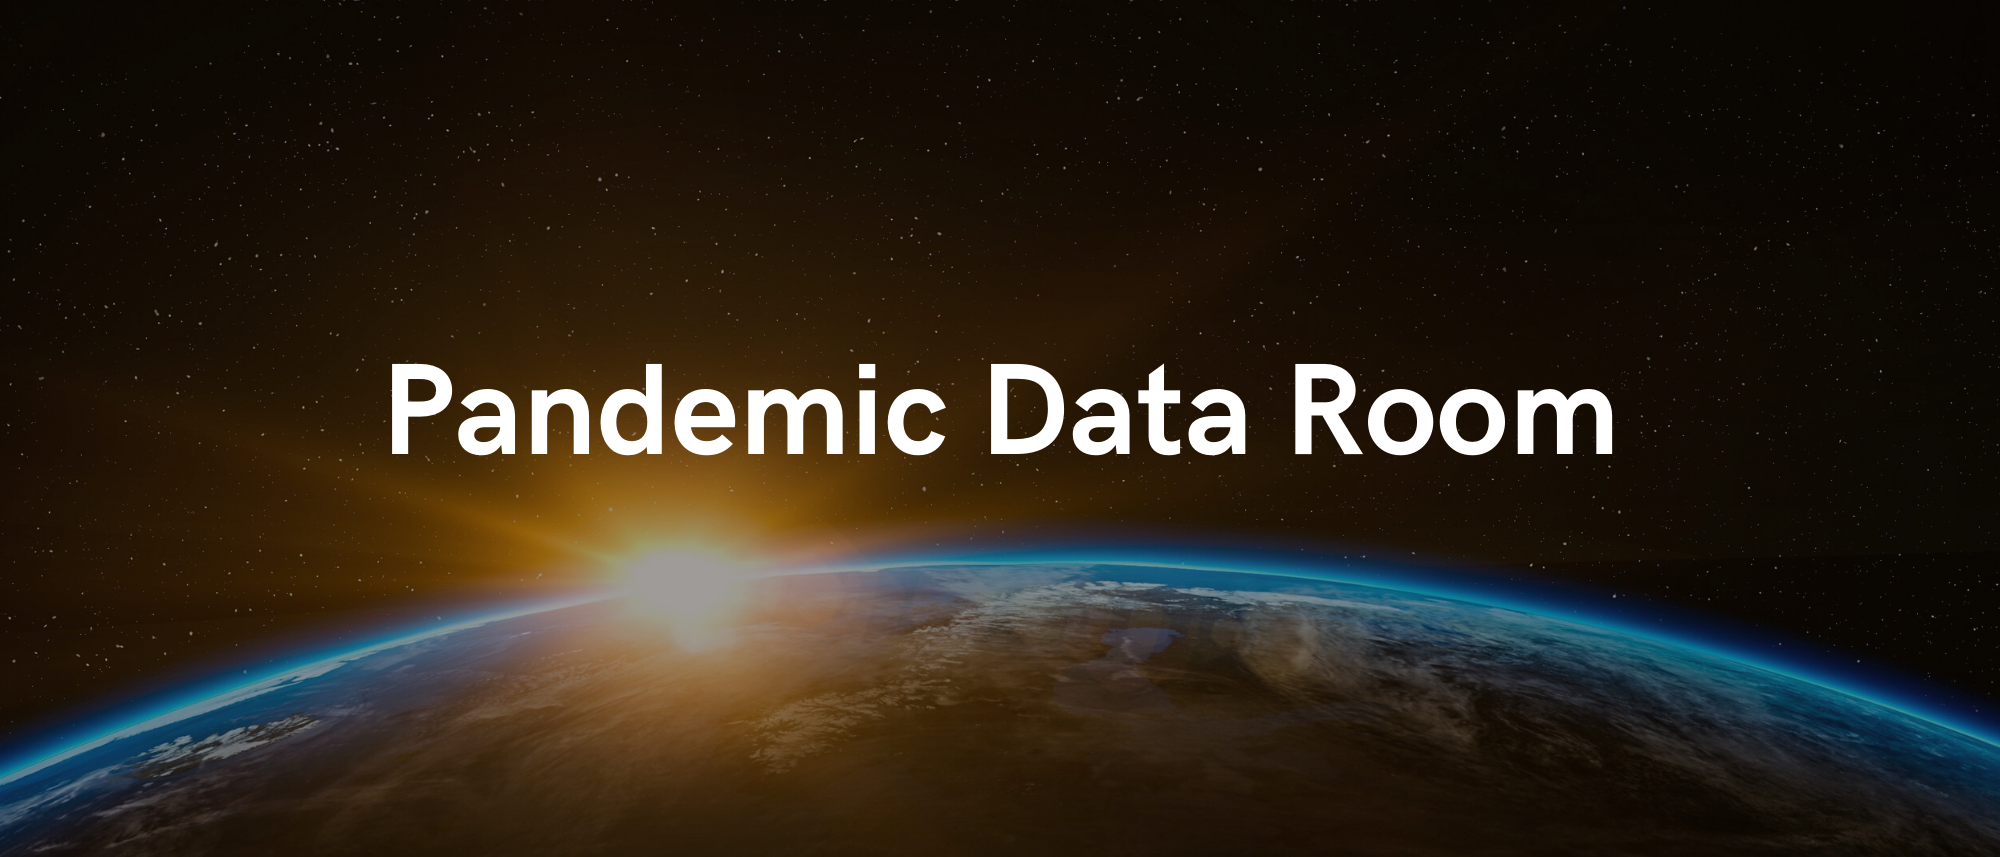 Pandemic Data Room